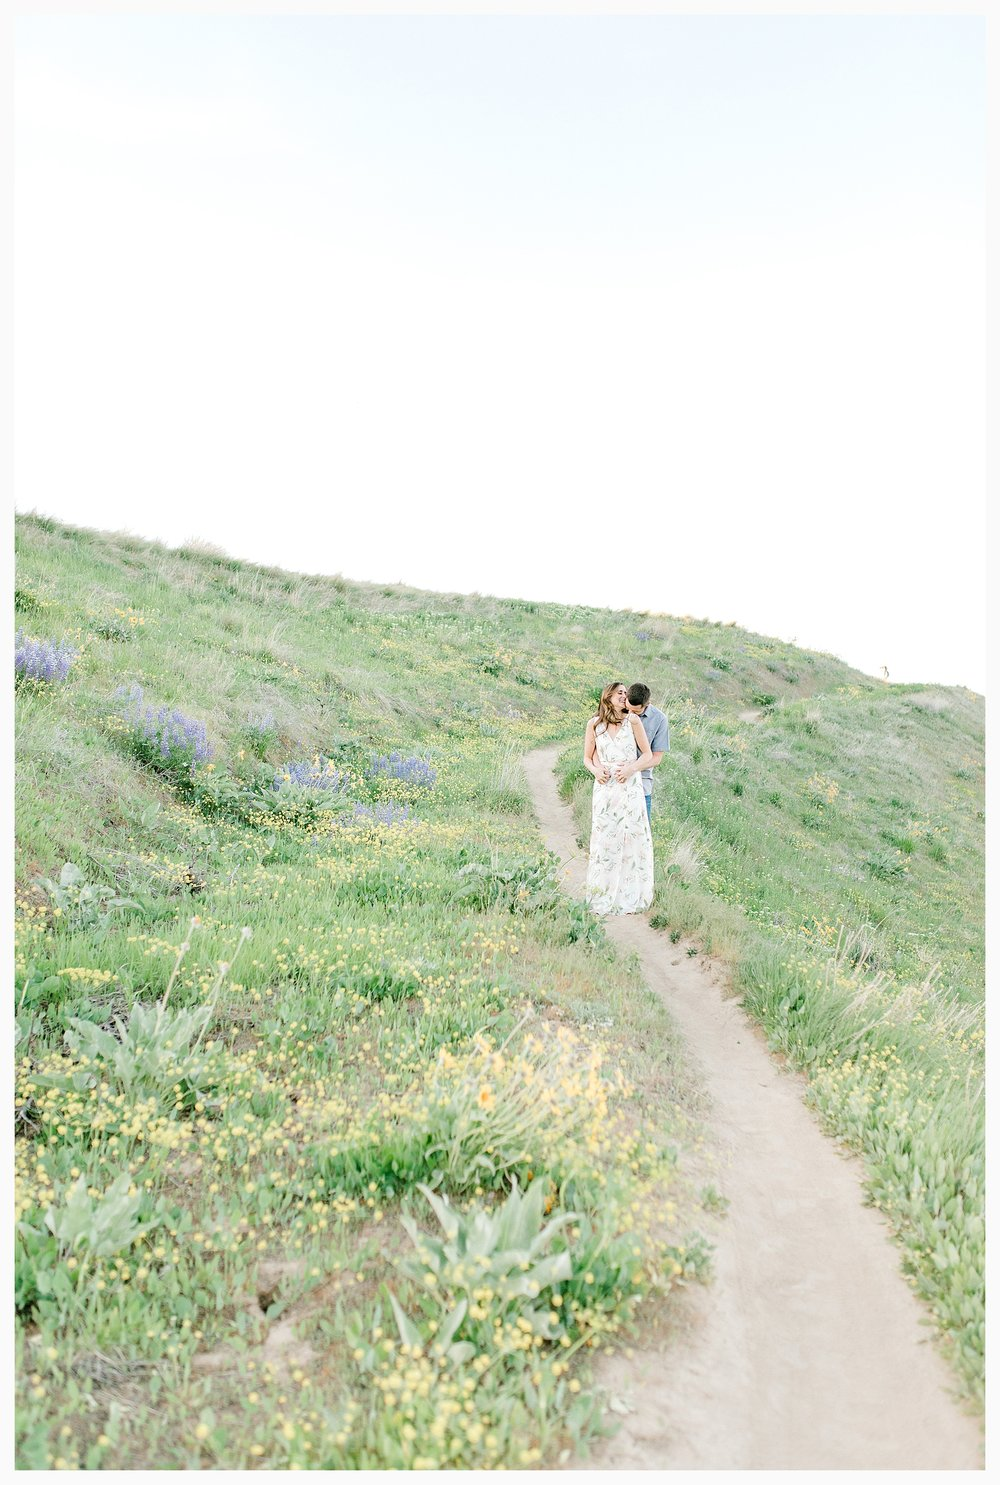 Engagement session amongst the wildflowers in Wenatchee, Washington | Engagement Session Outfit Inspiration for Wedding Photography with Emma Rose Company | Light and Airy PNW Photographer, Seattle Bride_0006.jpg